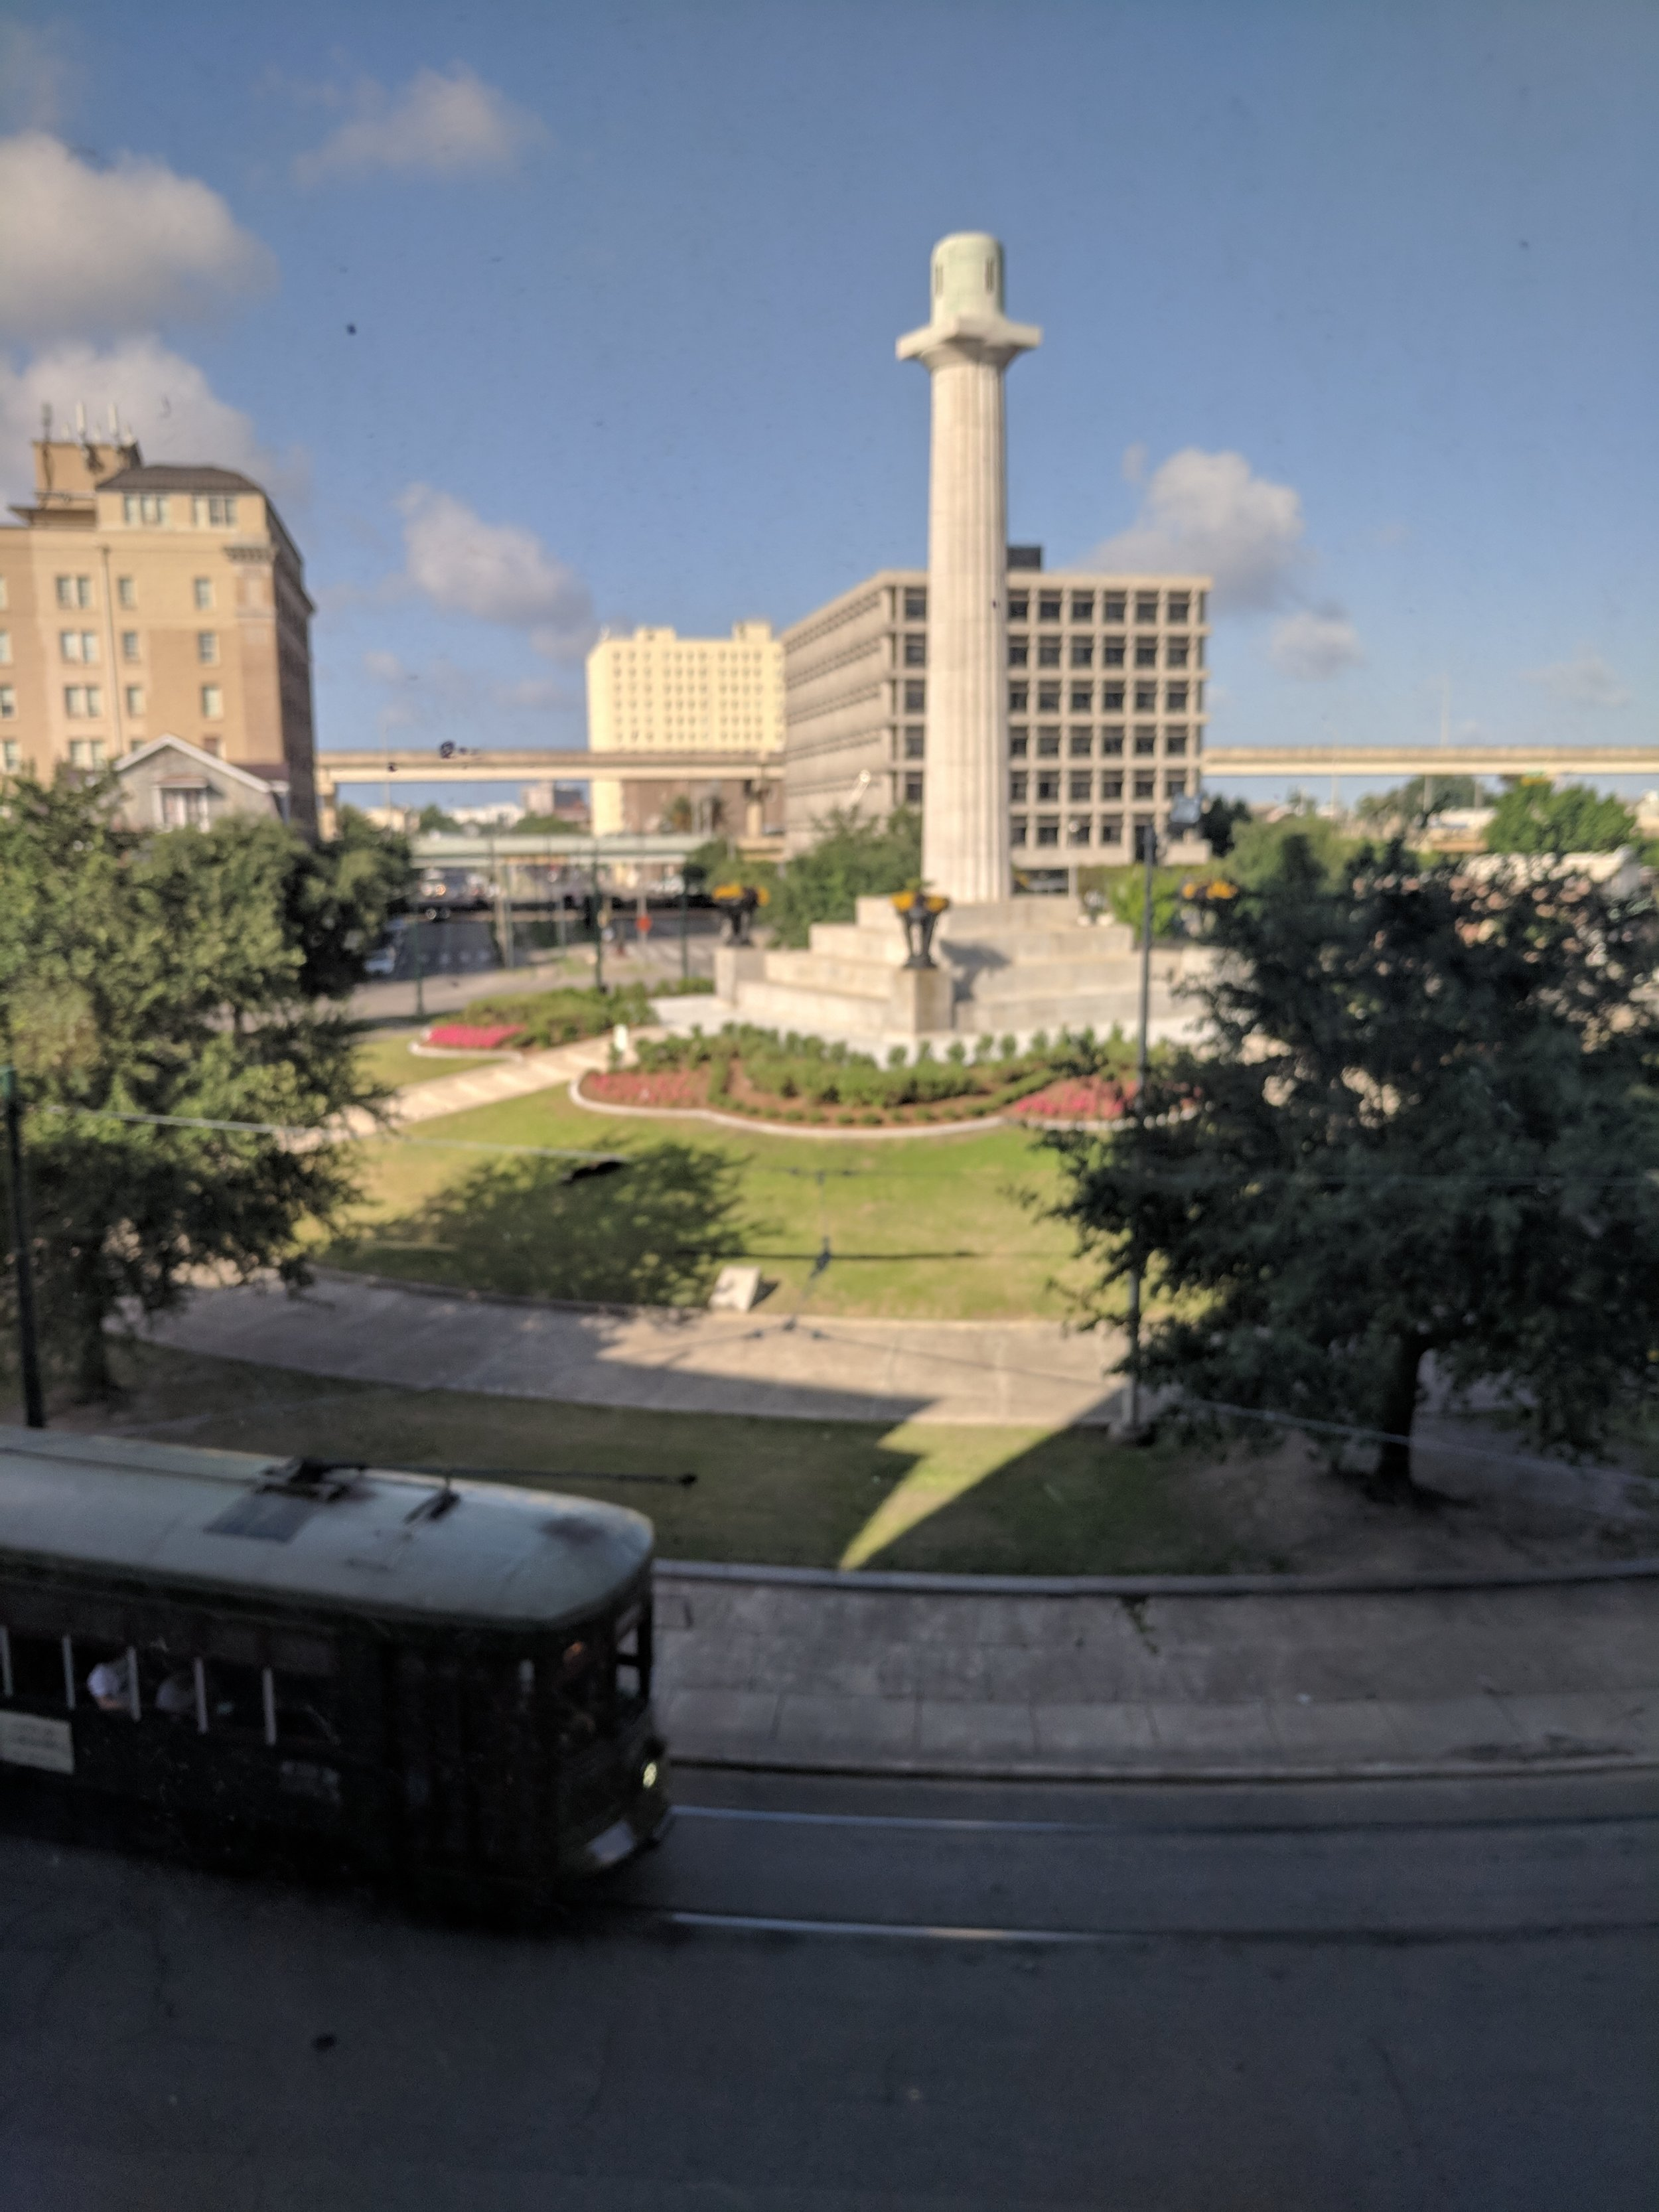 Statue-less column in (formerly) Lee Circle